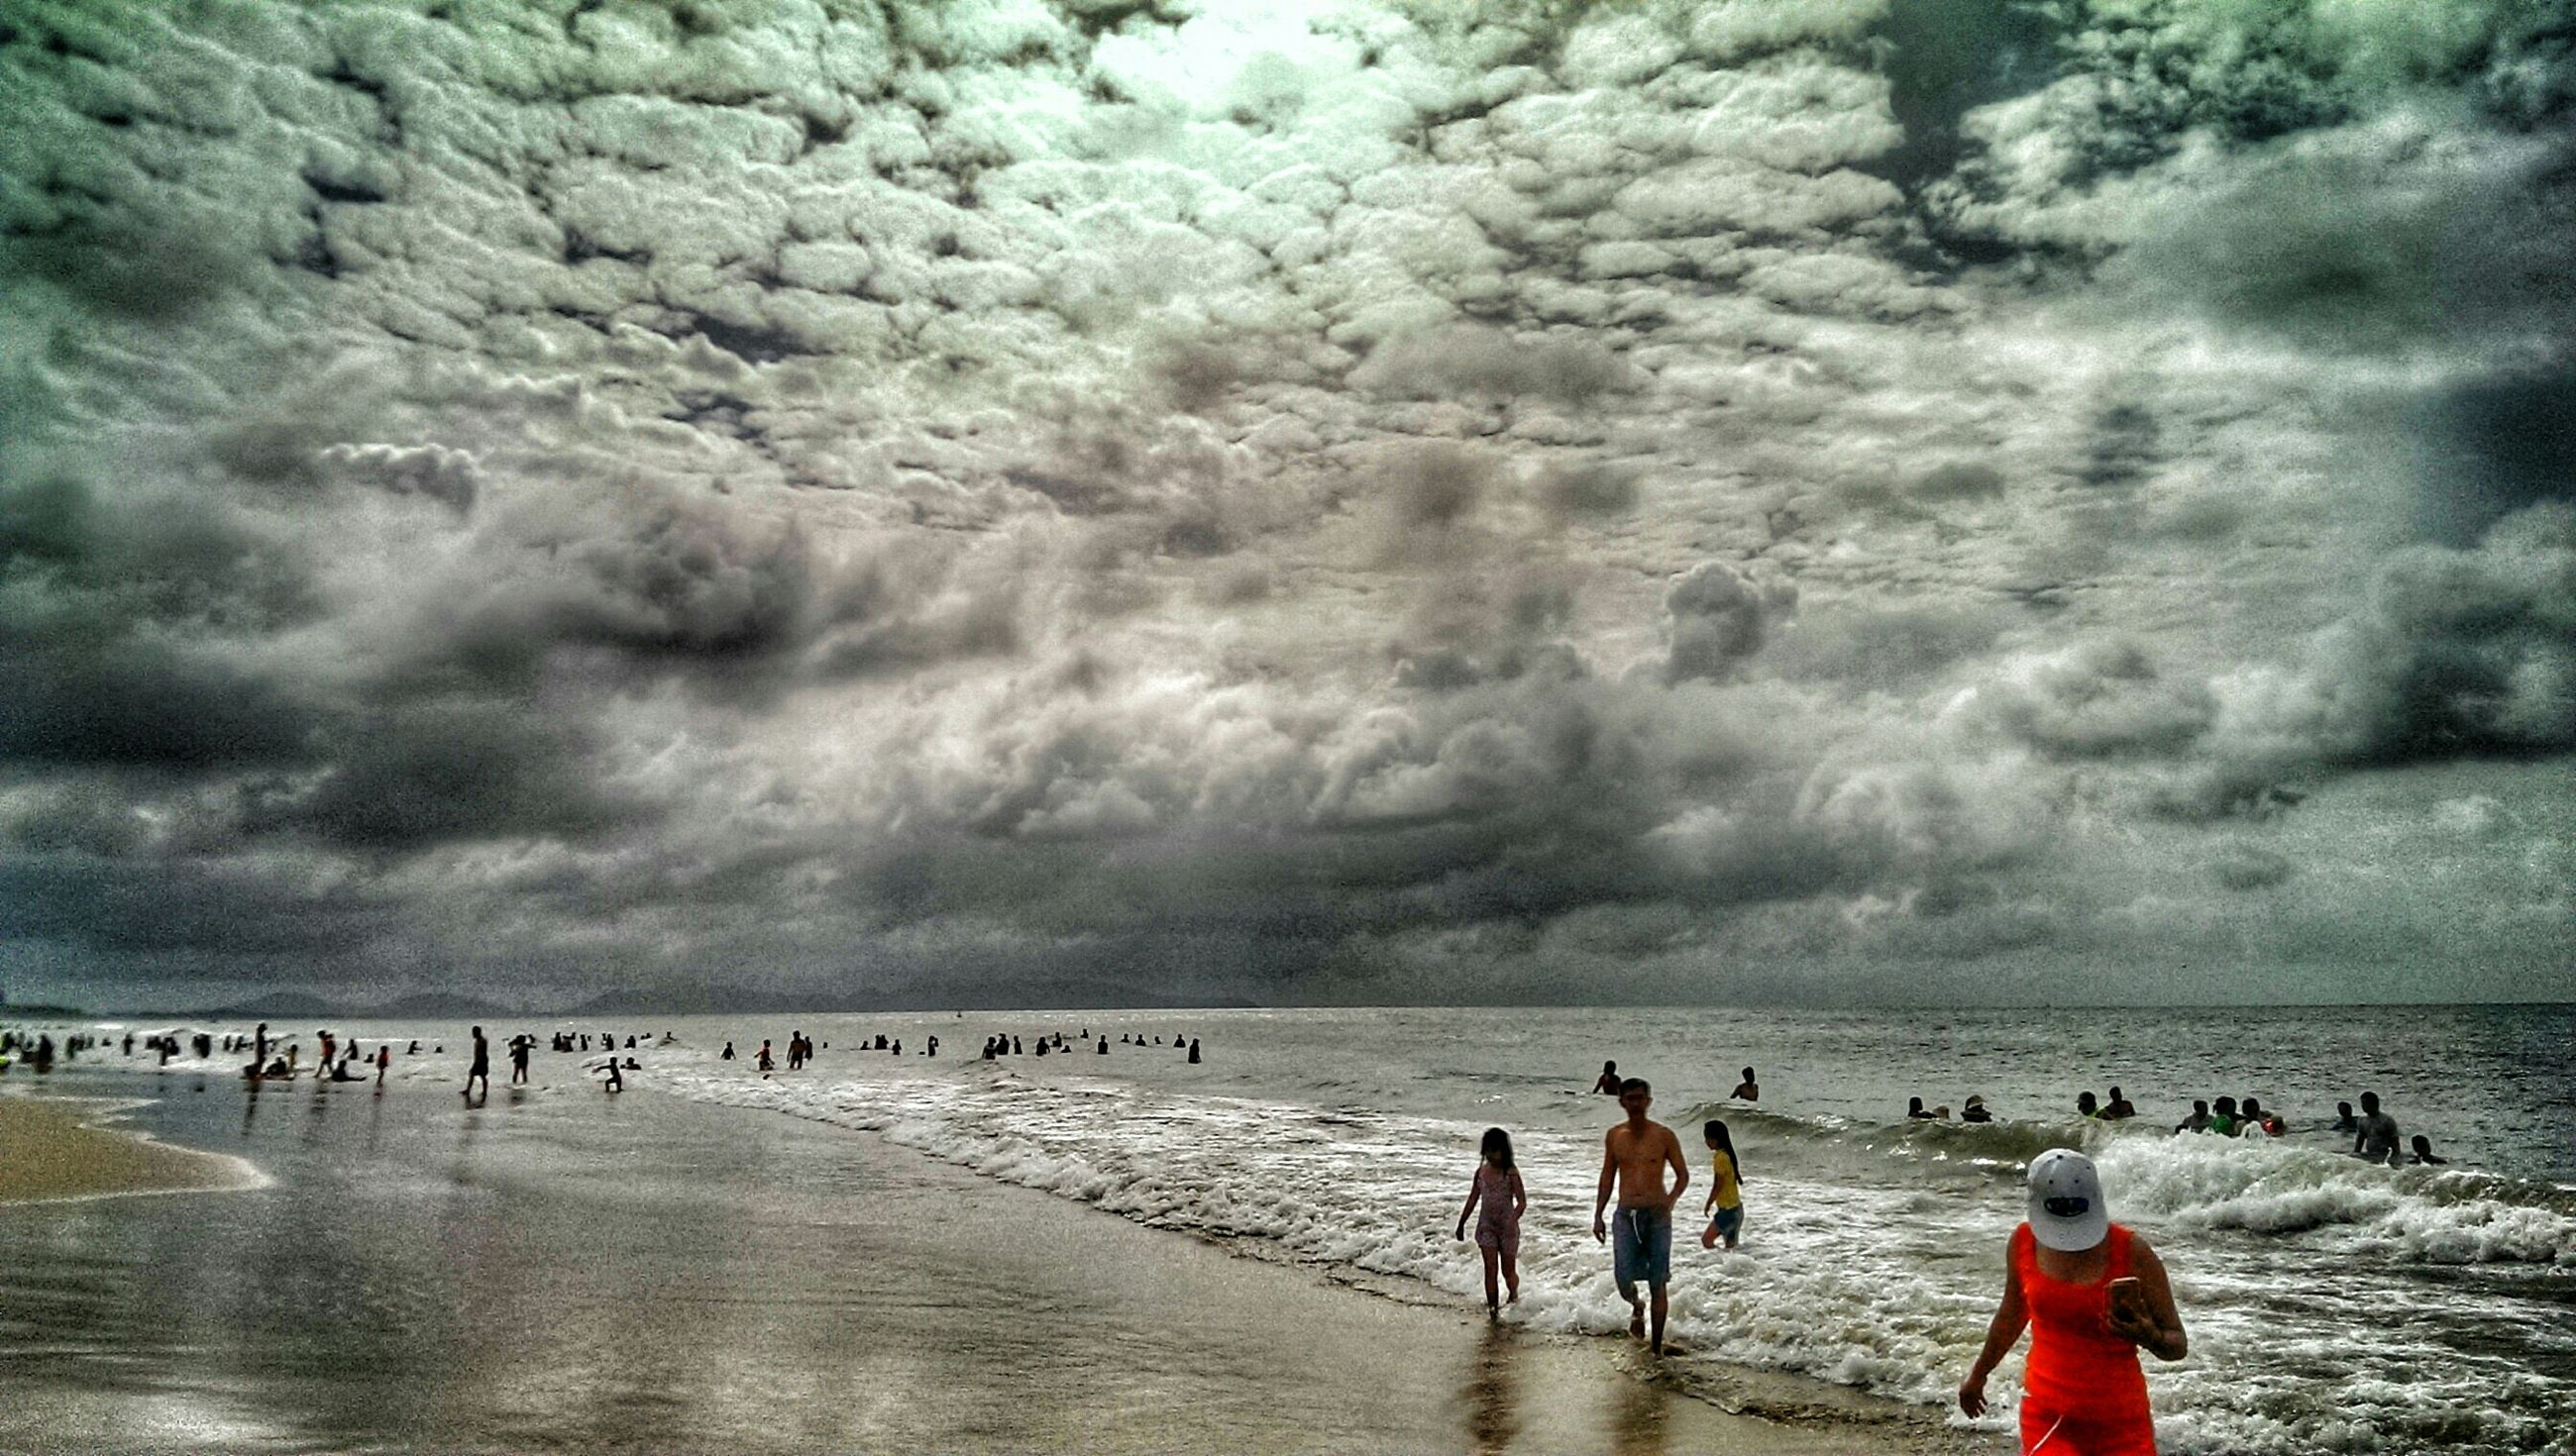 sea, water, beach, sky, leisure activity, lifestyles, horizon over water, cloud - sky, shore, cloudy, vacations, large group of people, men, wave, scenics, person, sand, enjoyment, beauty in nature